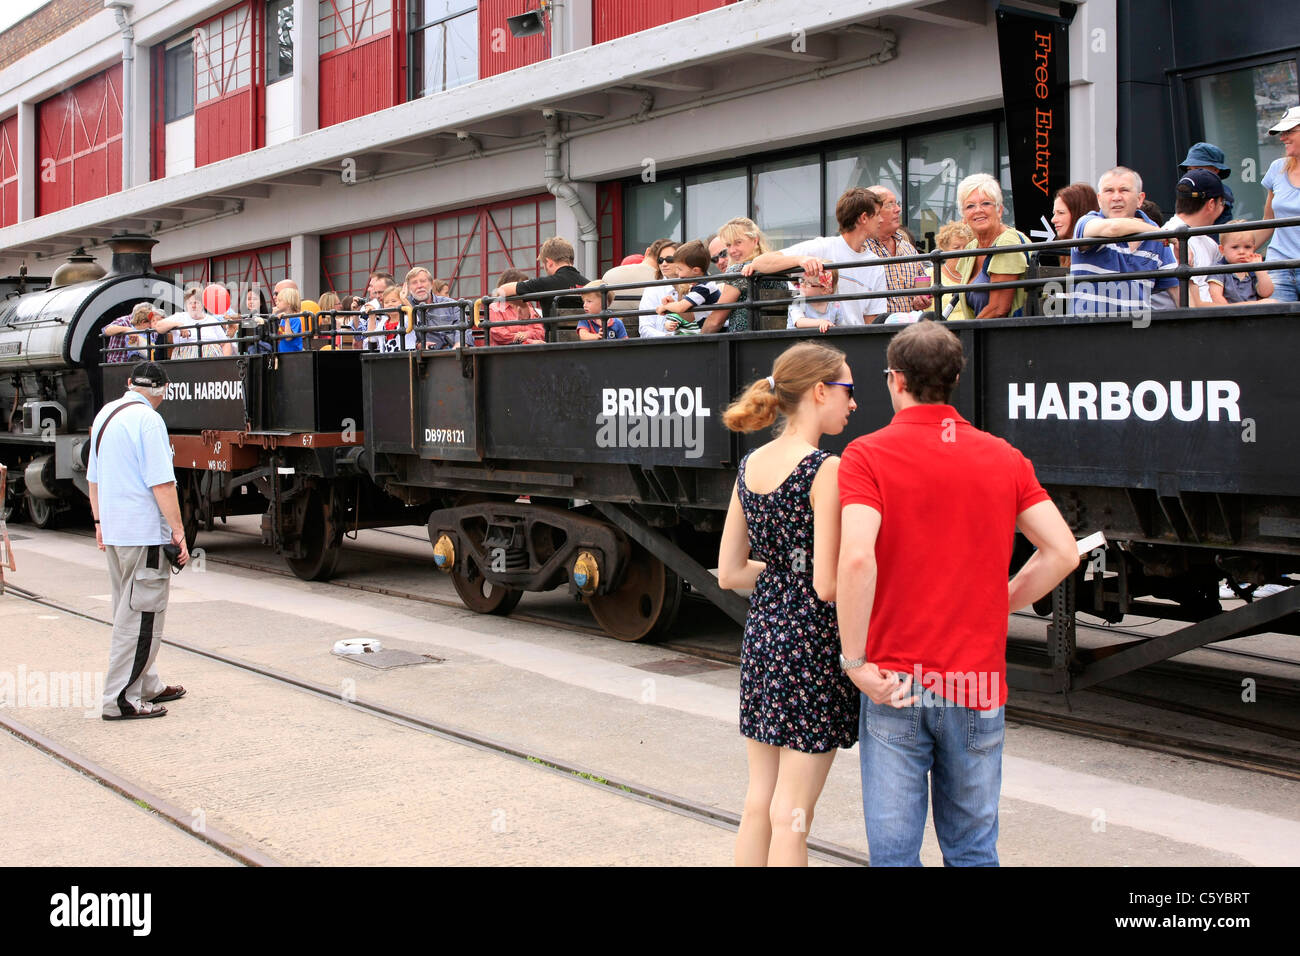 The old Bristol Harbour steam Train outside the M Shed on Festival Day - Stock Image